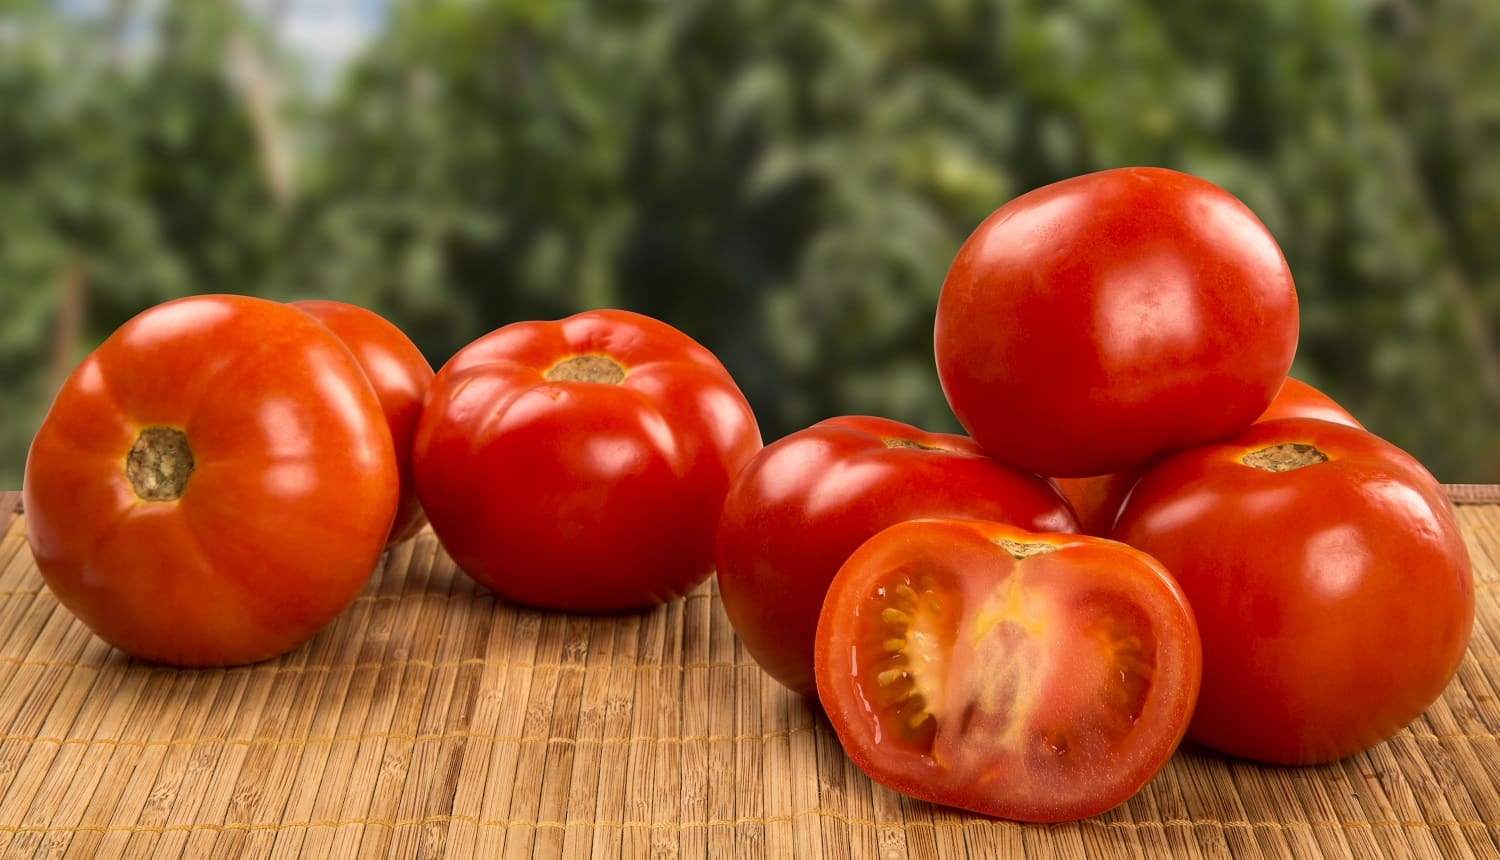 Some tomatoes over a wooden background. Fresh vegetable.